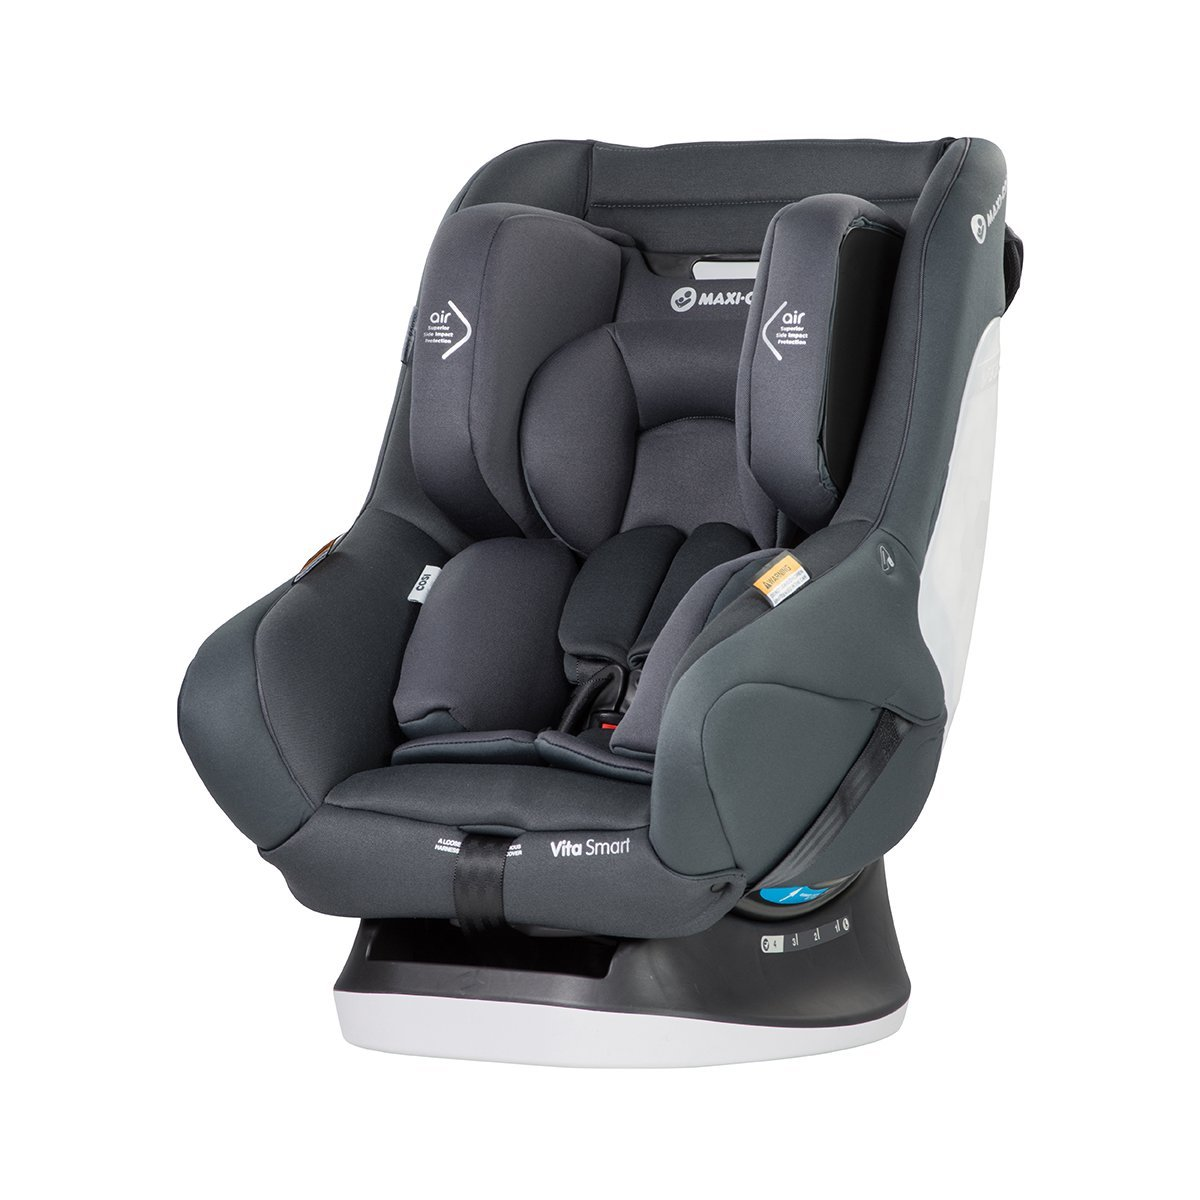 Maxi Cosi Vita Smart - Castlerock with FREE FITTING